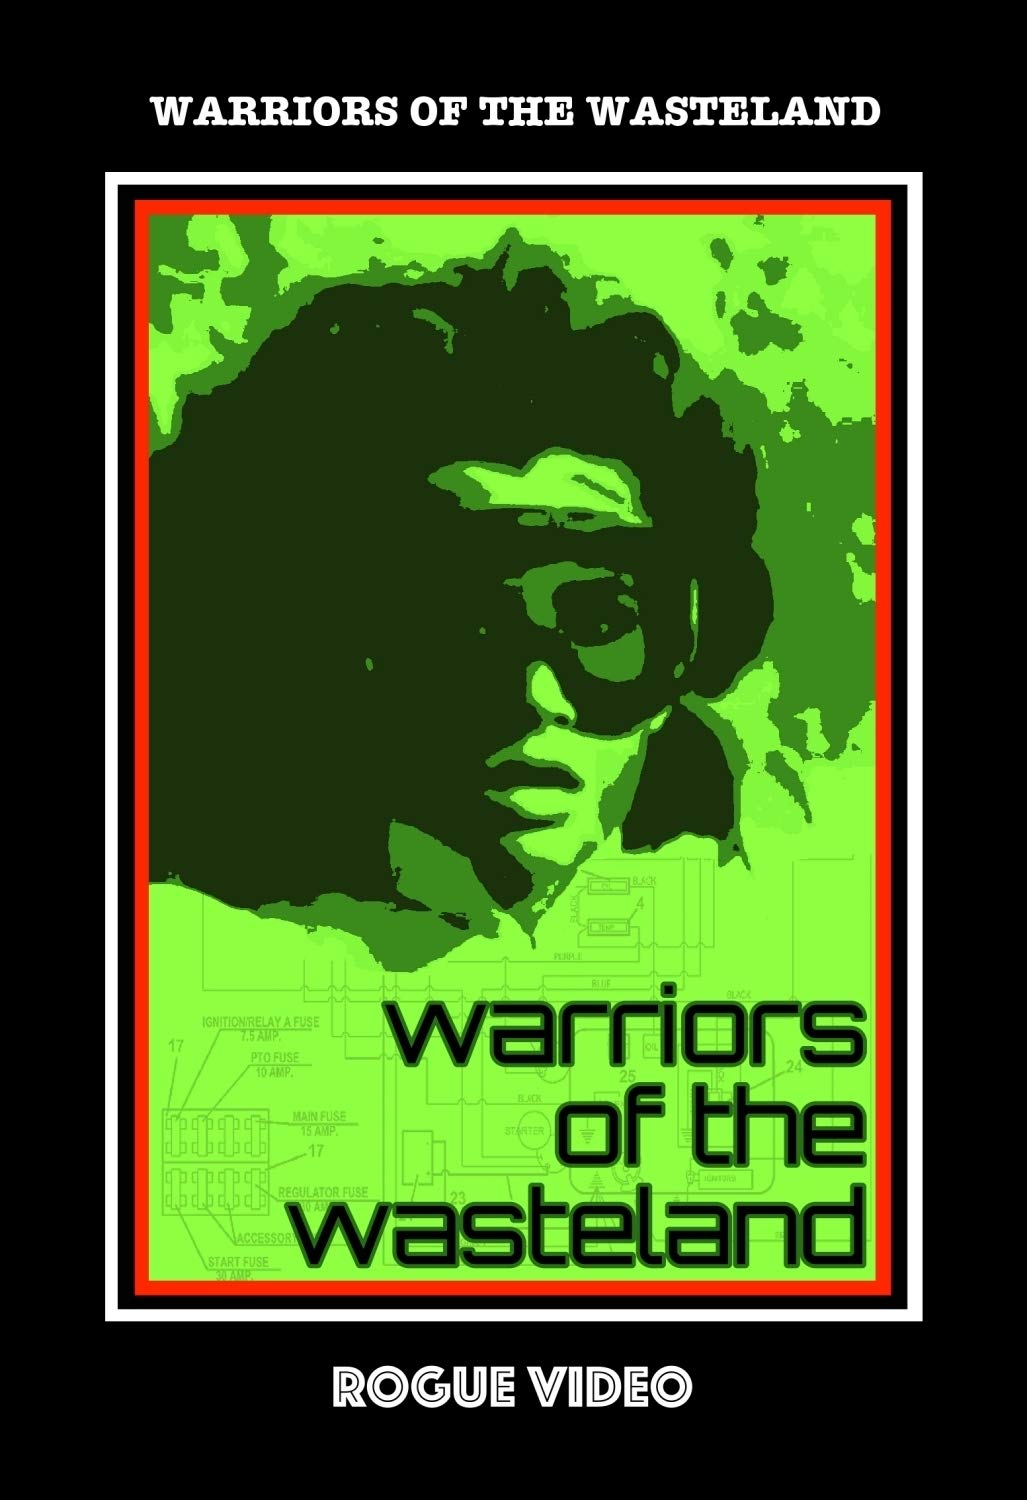 Warriors Of The Wasteland (1983) DVD by ROGUE VIDEO: cult films & fiction